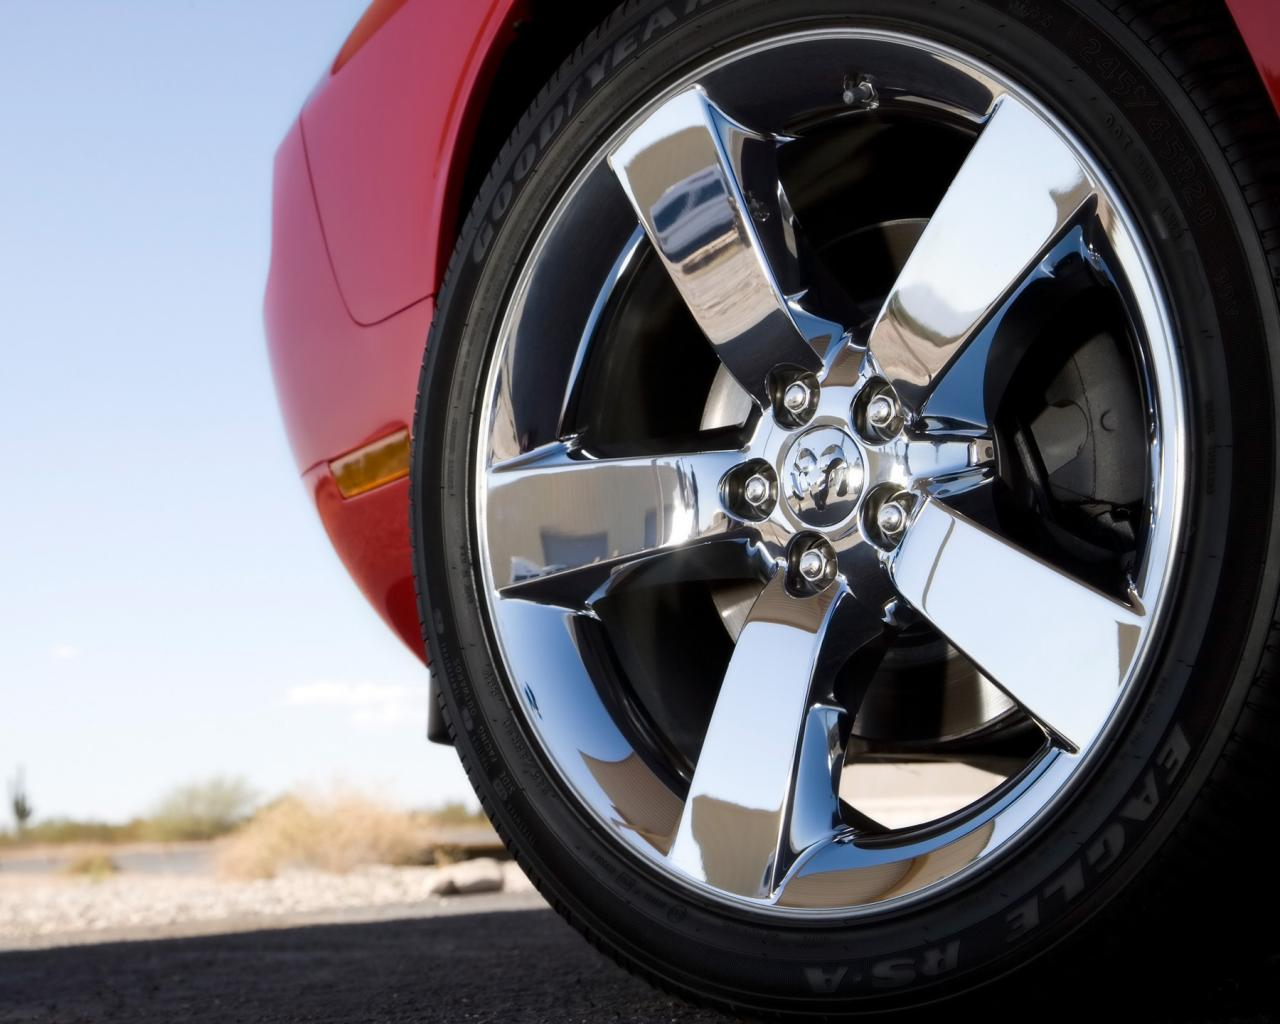 2009 Dodge Challenger Rt Wheel 1280x1024